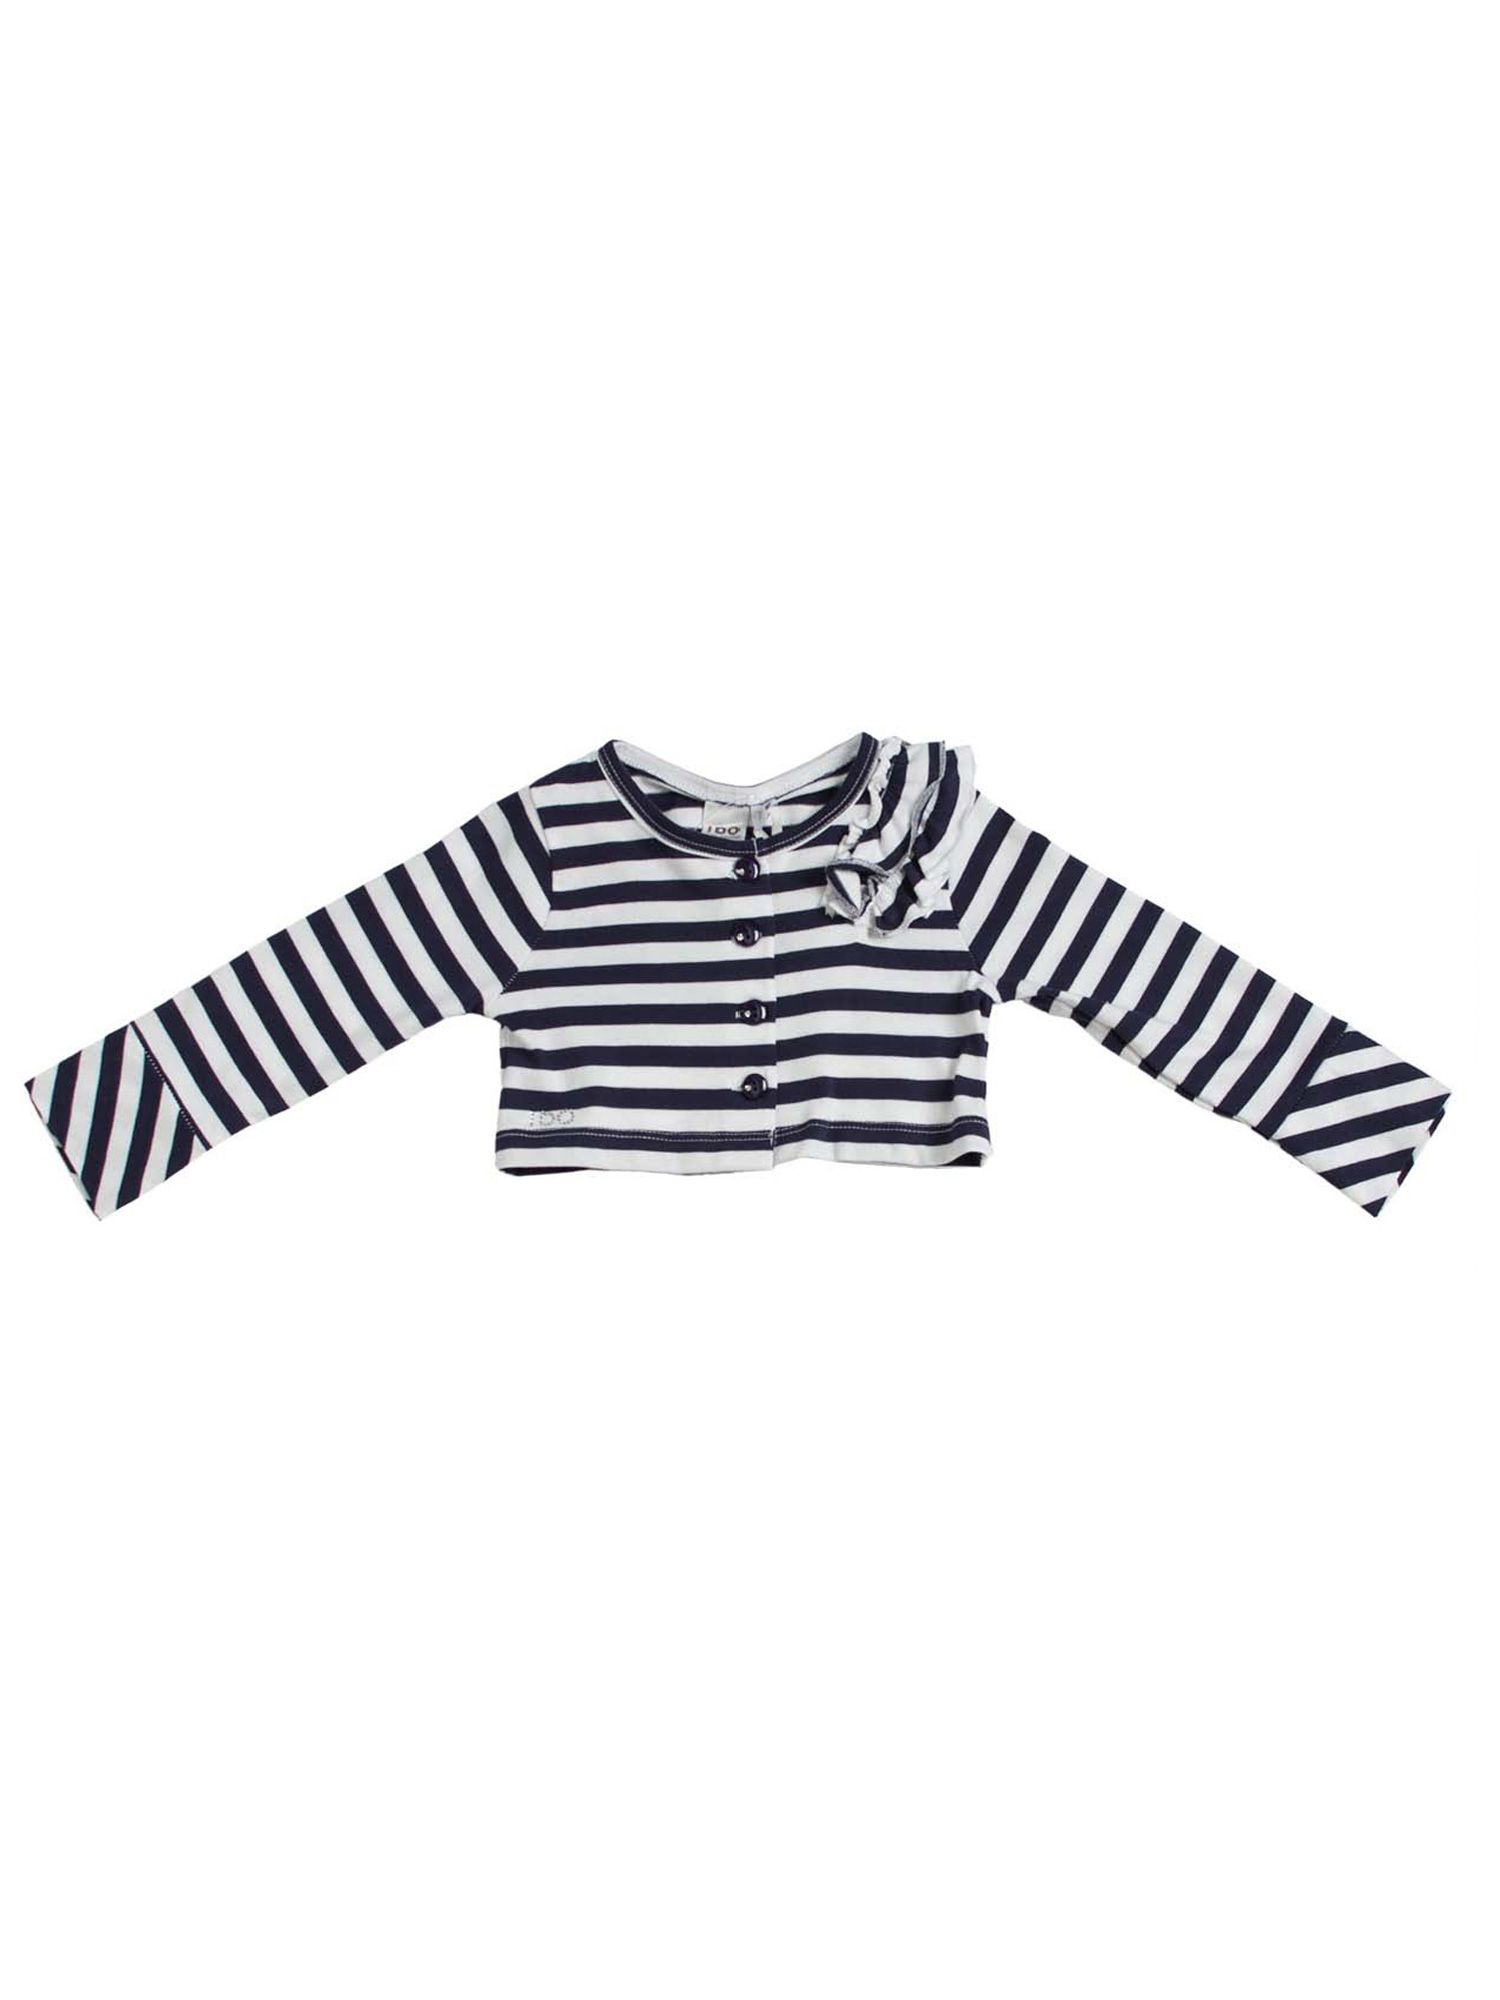 Girls white blue striped cardigan